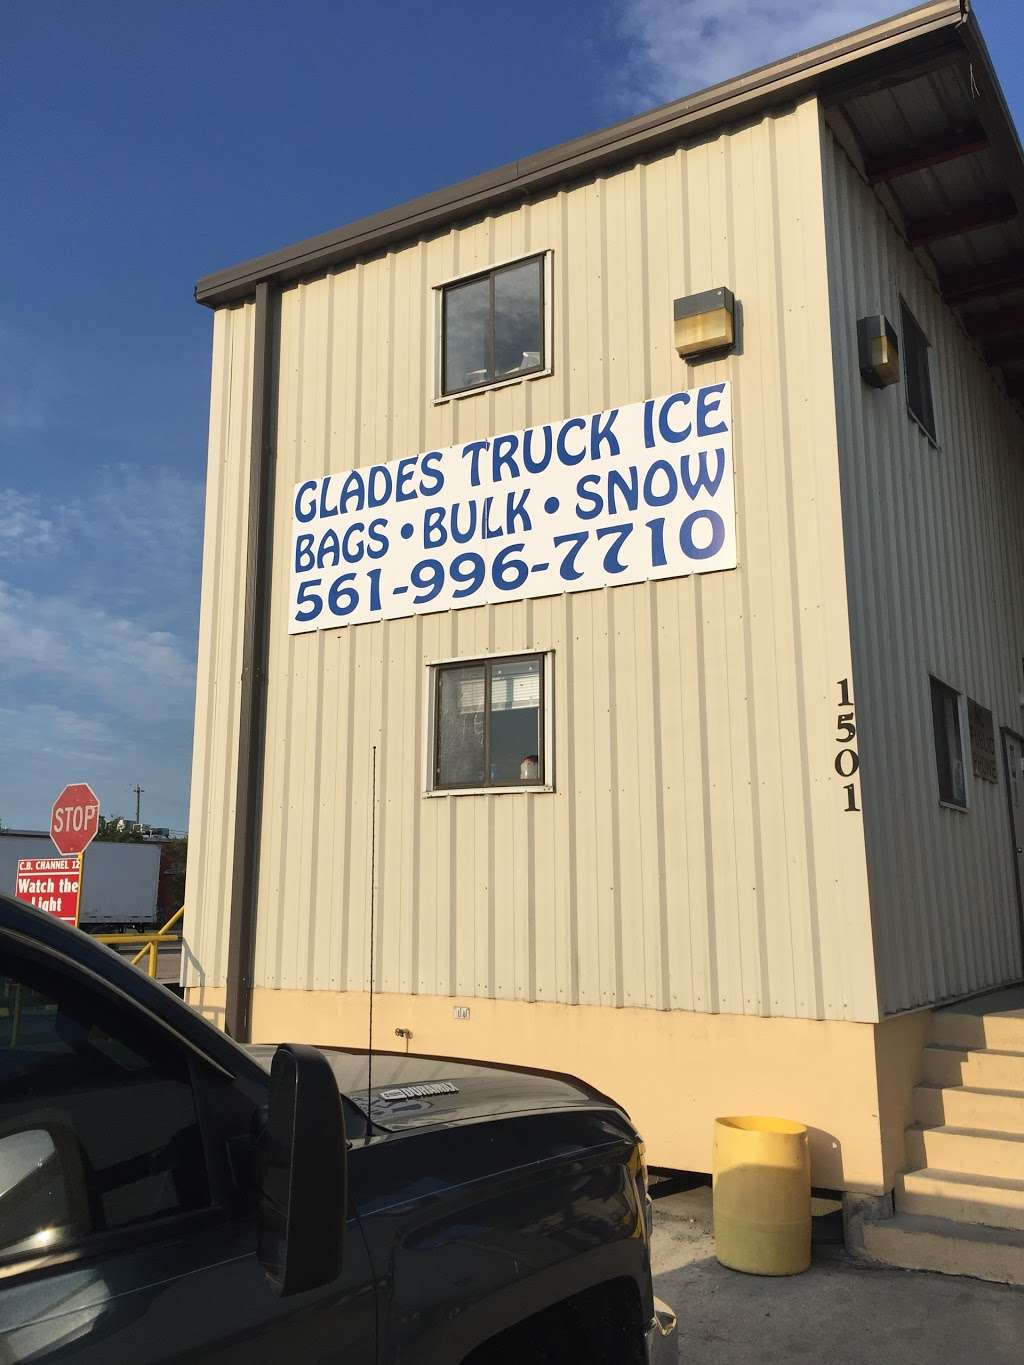 Glades Truck Ice Inc - store  | Photo 5 of 9 | Address: 1501 S Main St, Belle Glade, FL 33430, USA | Phone: (561) 996-7710